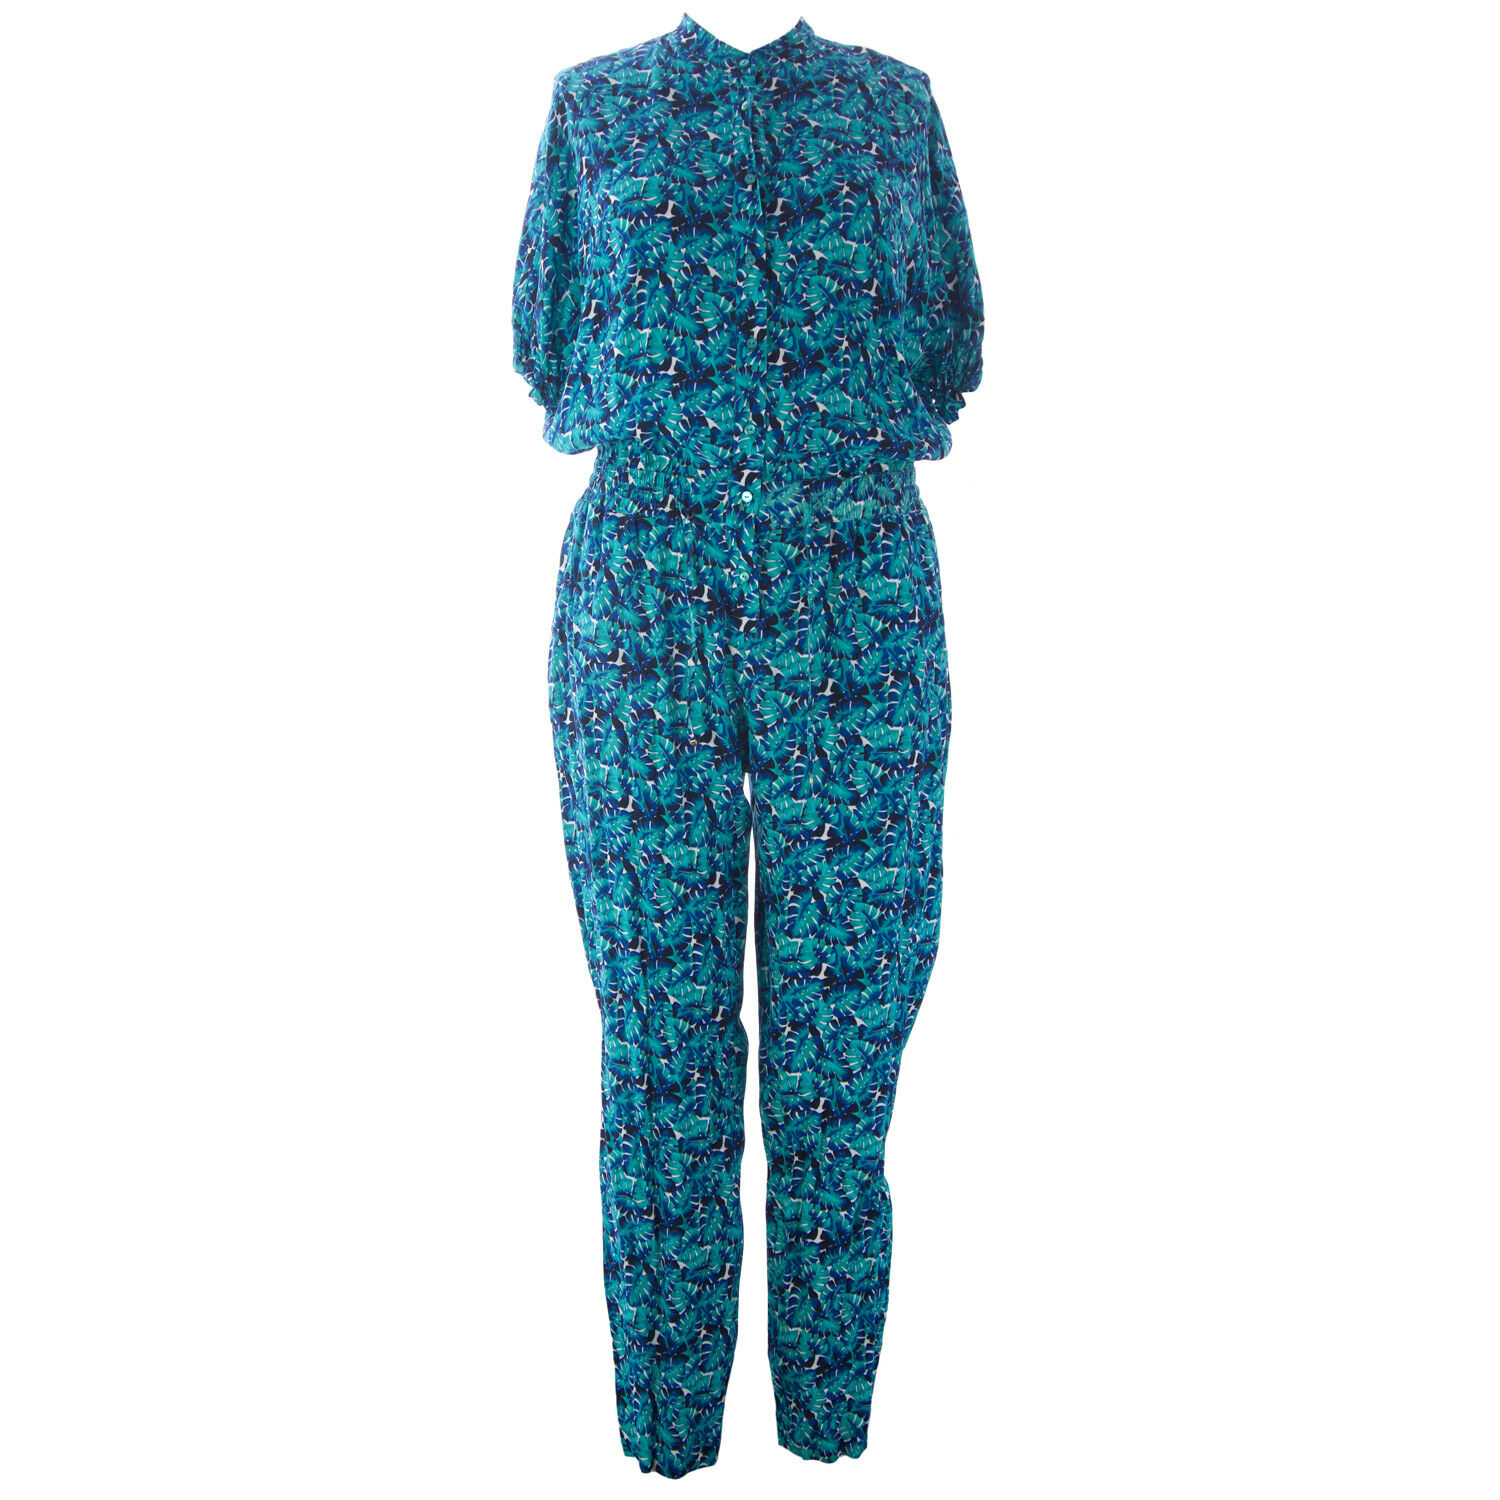 065cded2a2d MARINA RINALDI Women s bluee Falesia Floral Jumpsuit 515 NWT ...